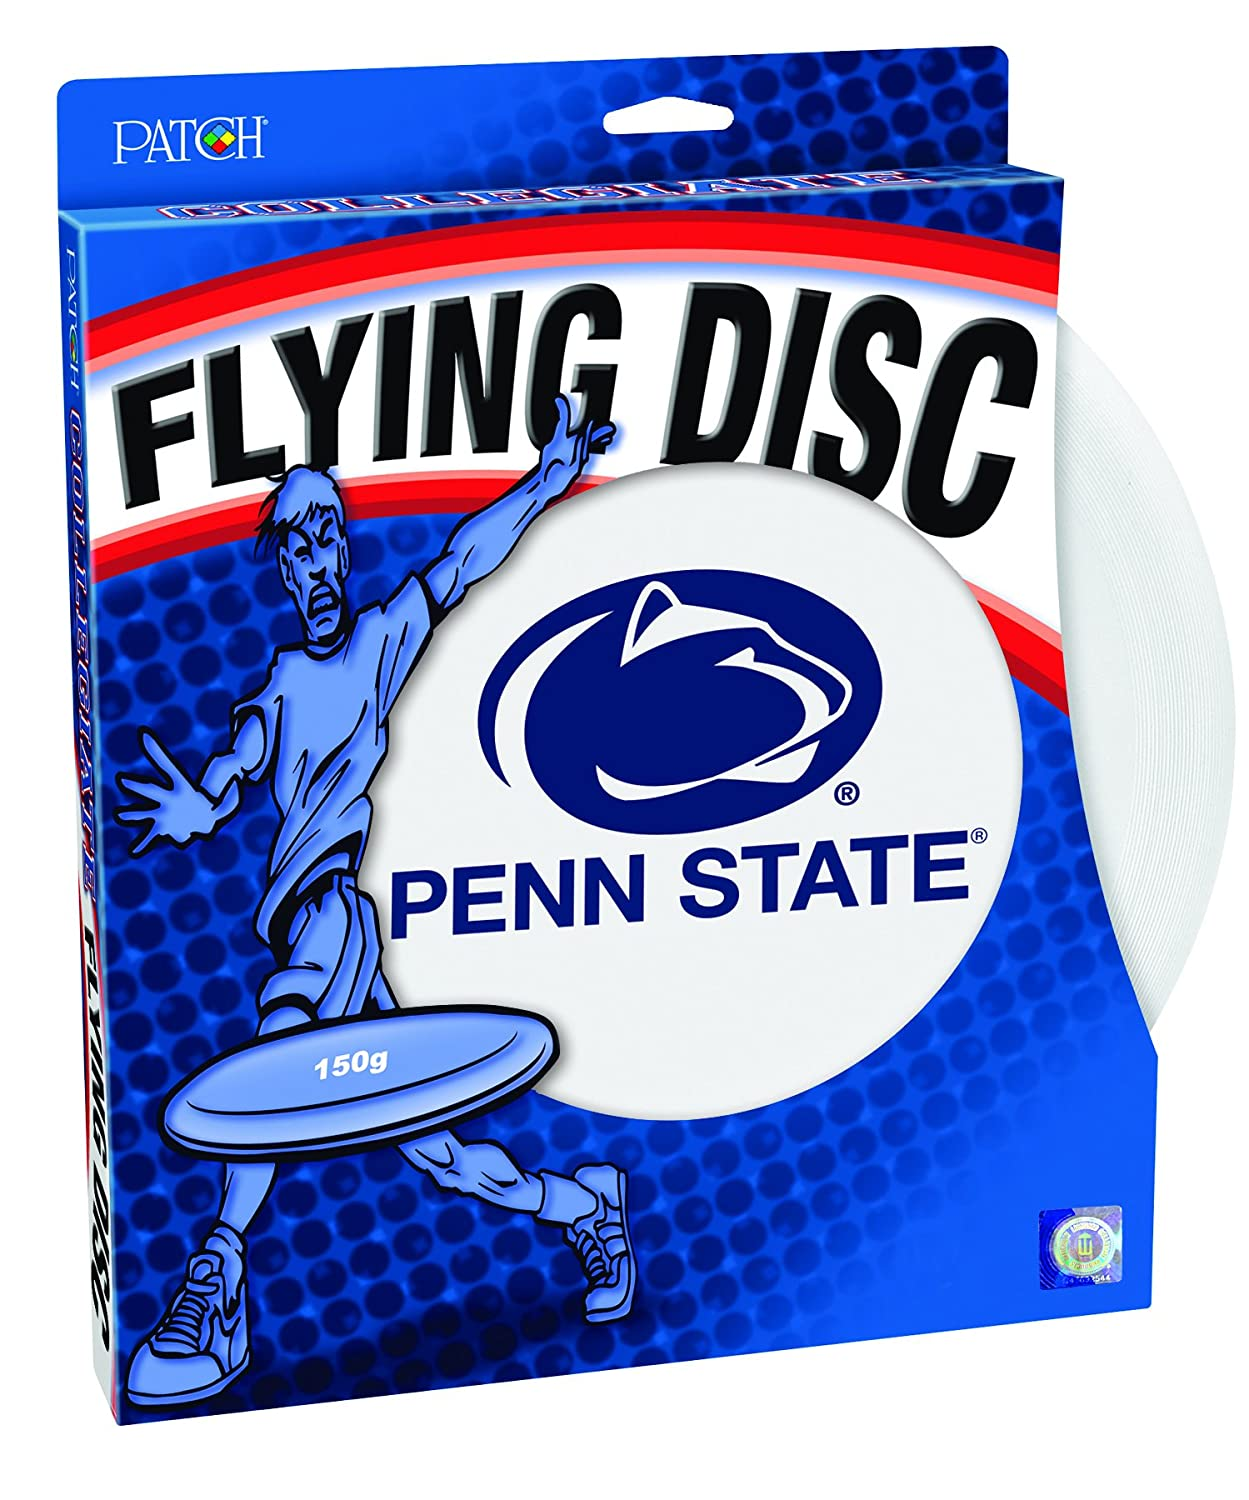 Patch Products Penn State Flying Disc N36570